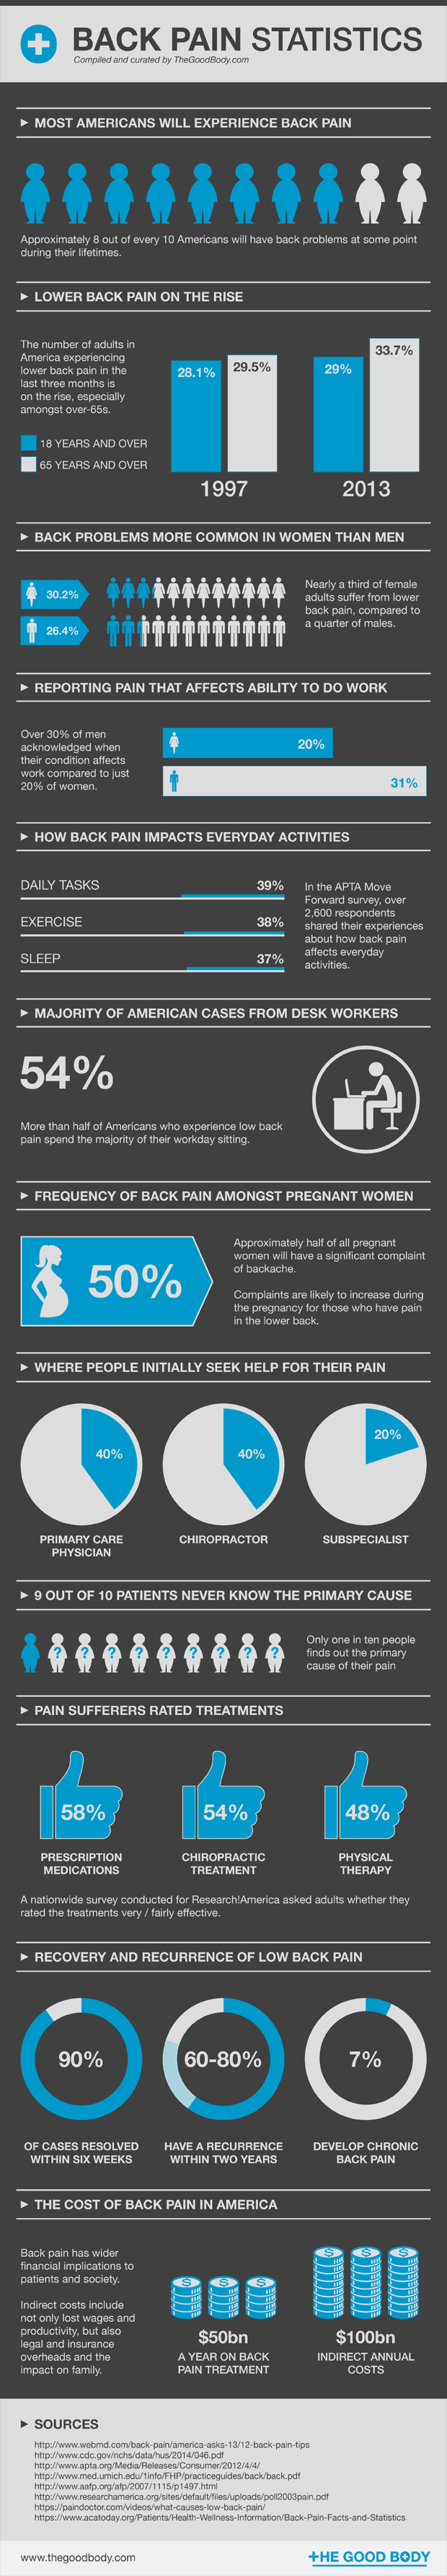 back-pain-statistics-infographic.png